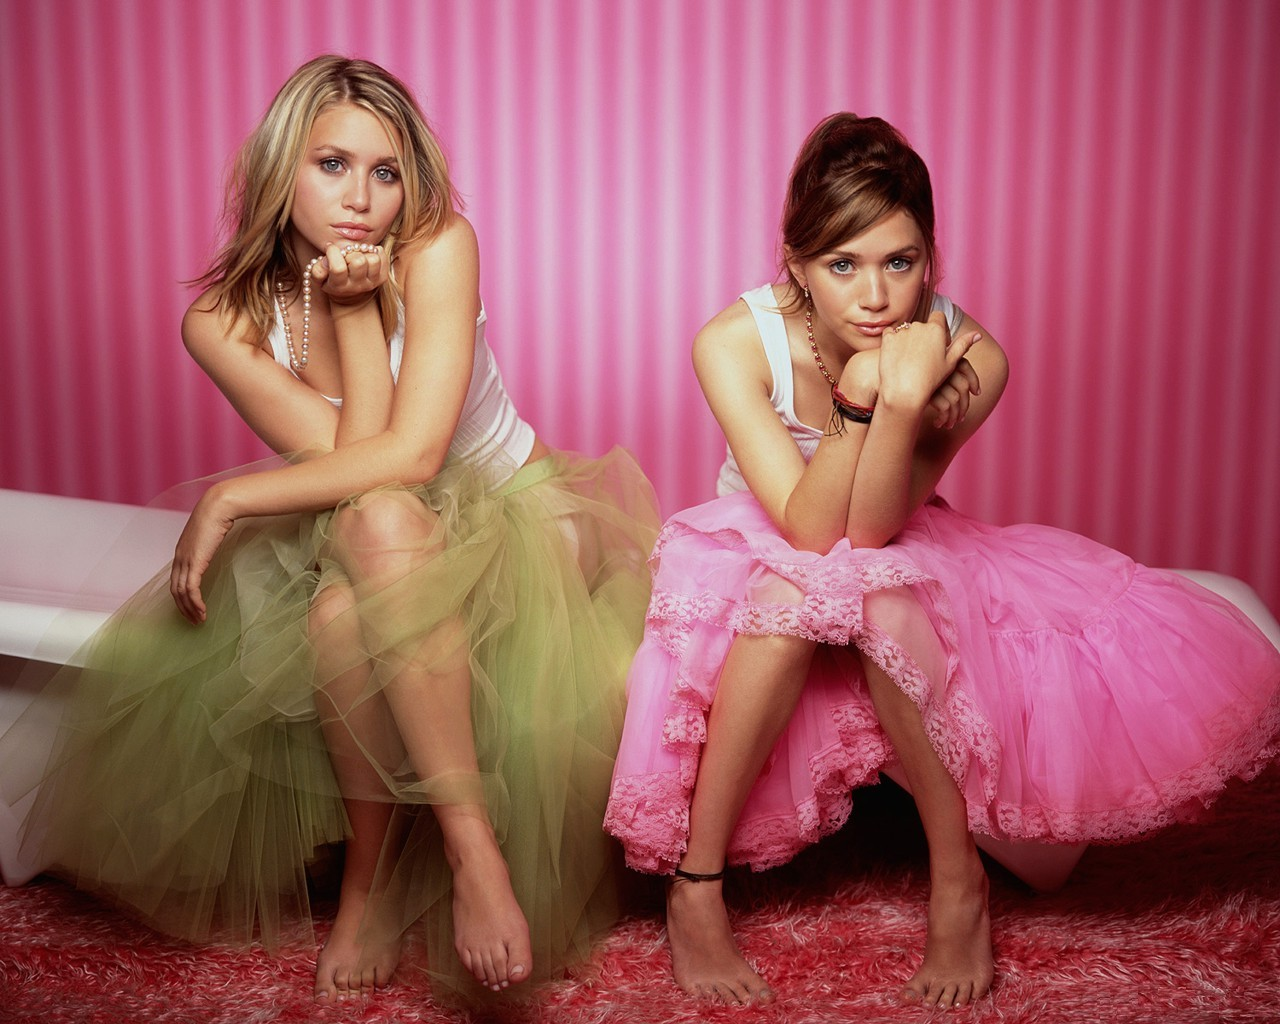 Mary Kate And Ashley Movies Celebrate The Olsen Twins: It Is A Big Deal, It Is To Me!: Guilty Pleasure